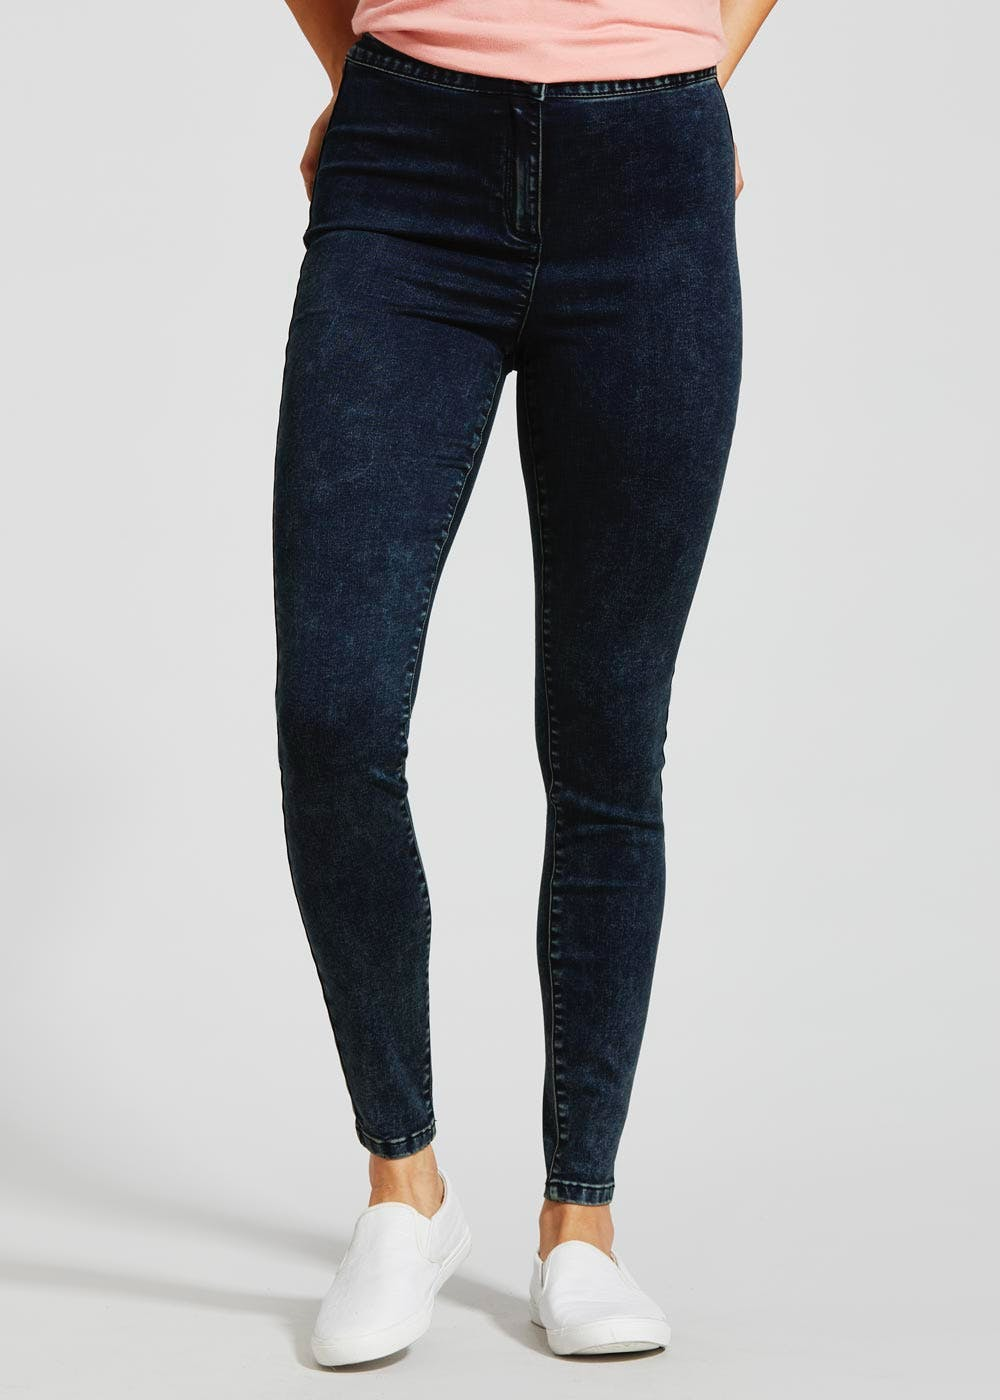 new appearance outlet online temperament shoes Jessie High Waisted Jeans – Navy – Matalan